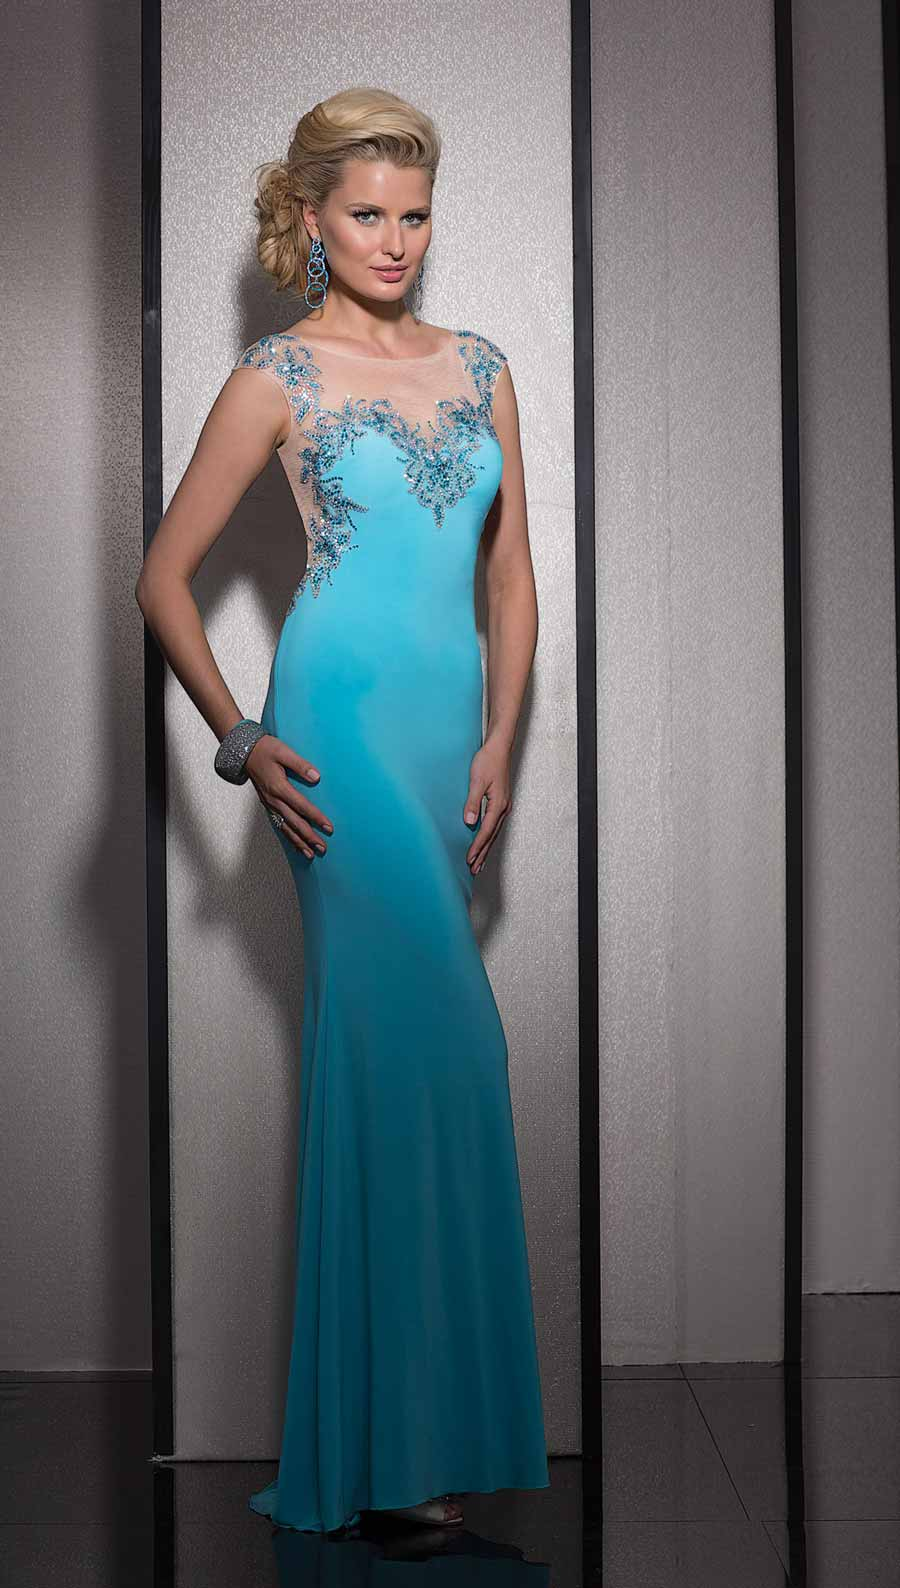 Clarisse Long Prom Dress 2603 | Promgirl.net